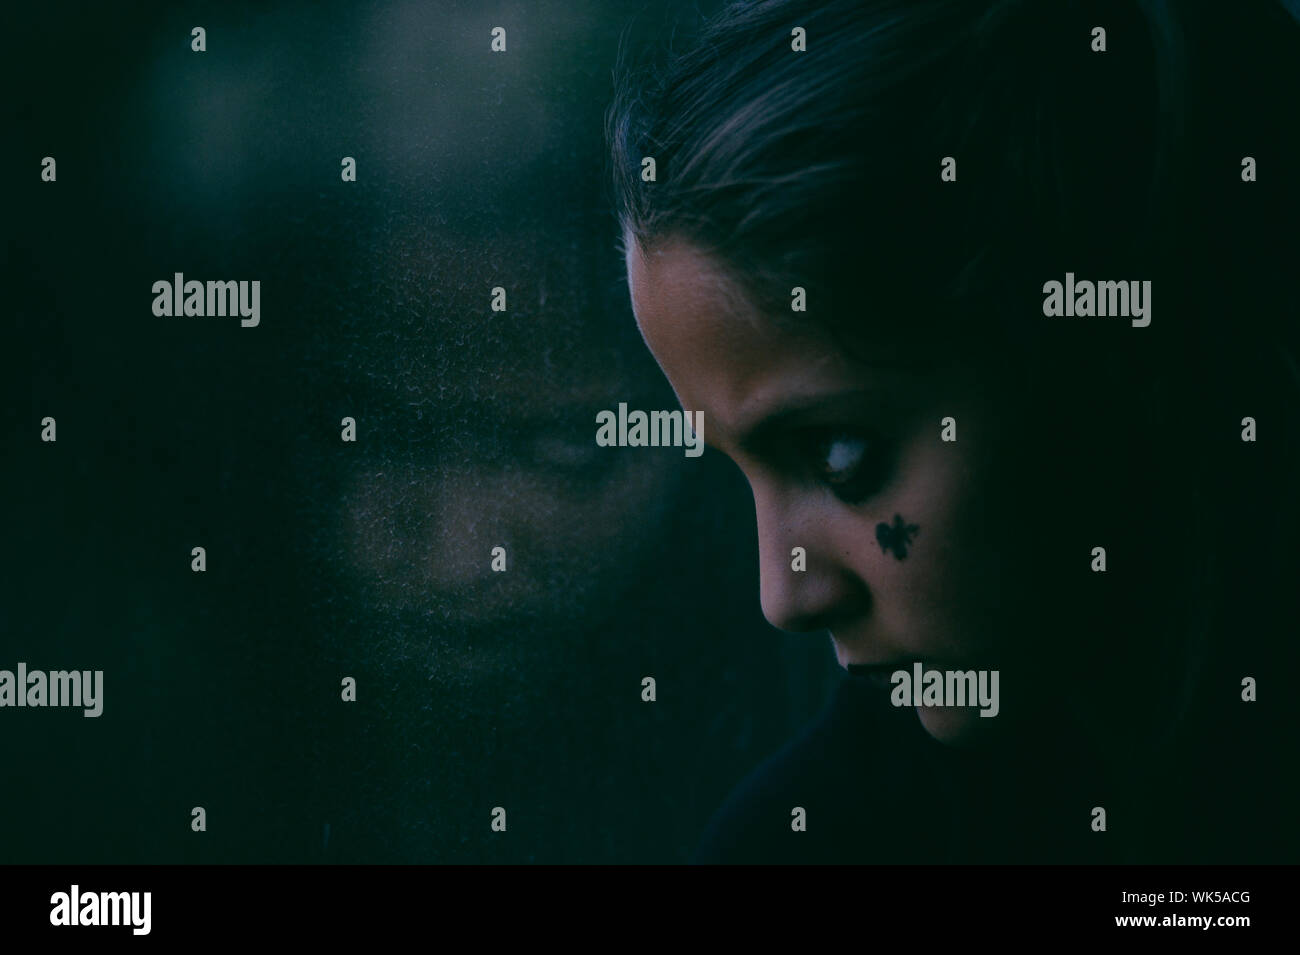 young little girl with dark makeup for Halloween holiday party looking on her reflection in window lit buy movie greenish light Stock Photo